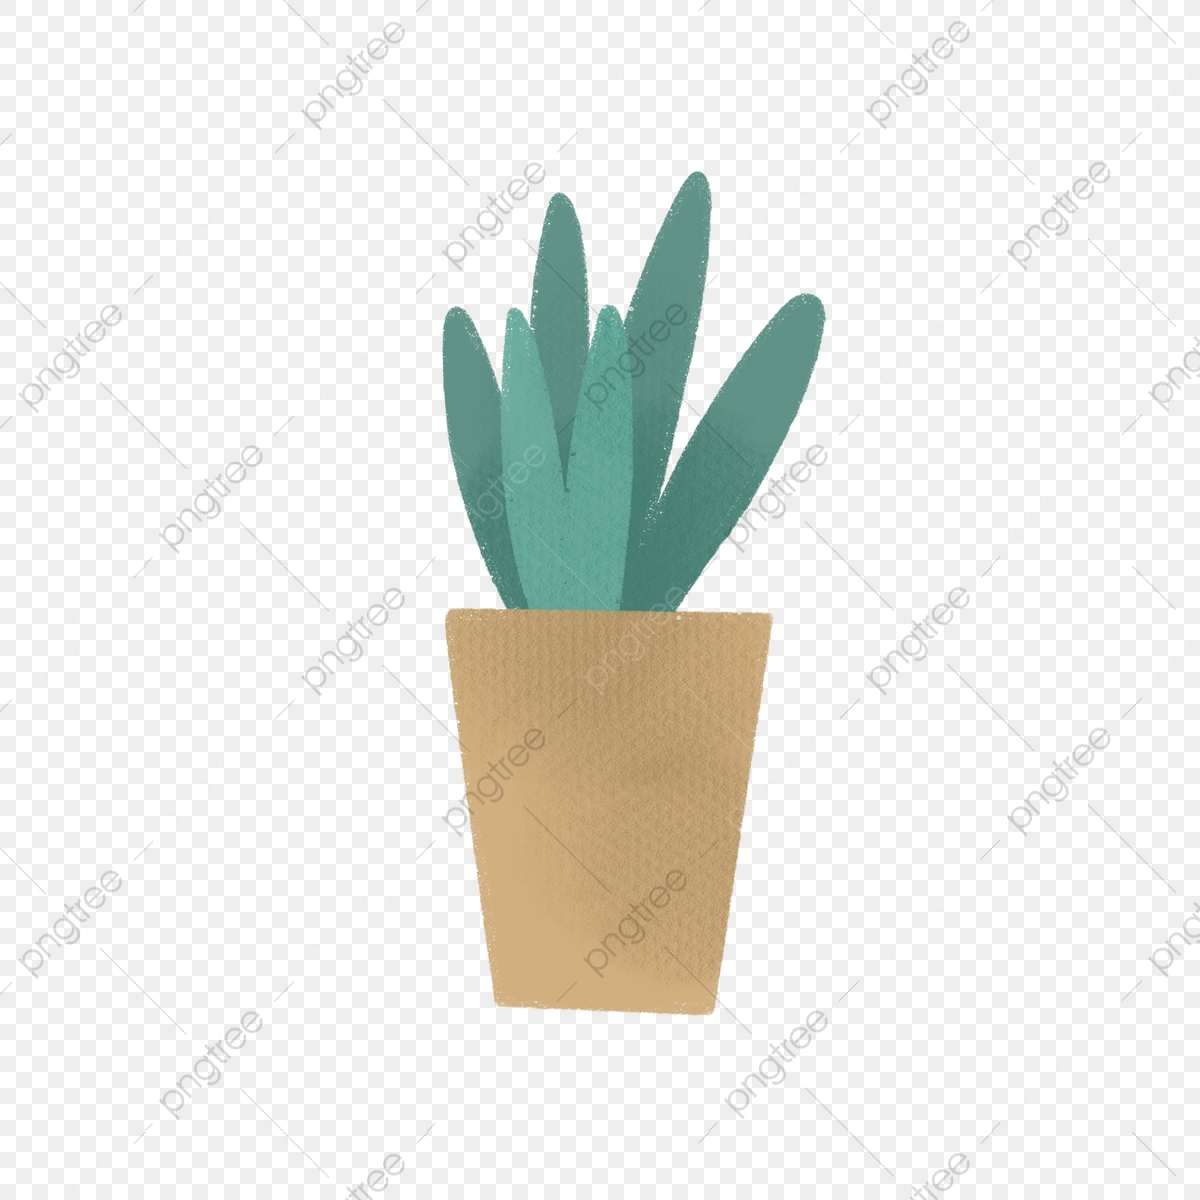 Hand Drawn Cute House Plant Drawing Nature Hand Drawn Png Transparent Clipart Image And Psd File For Free Download